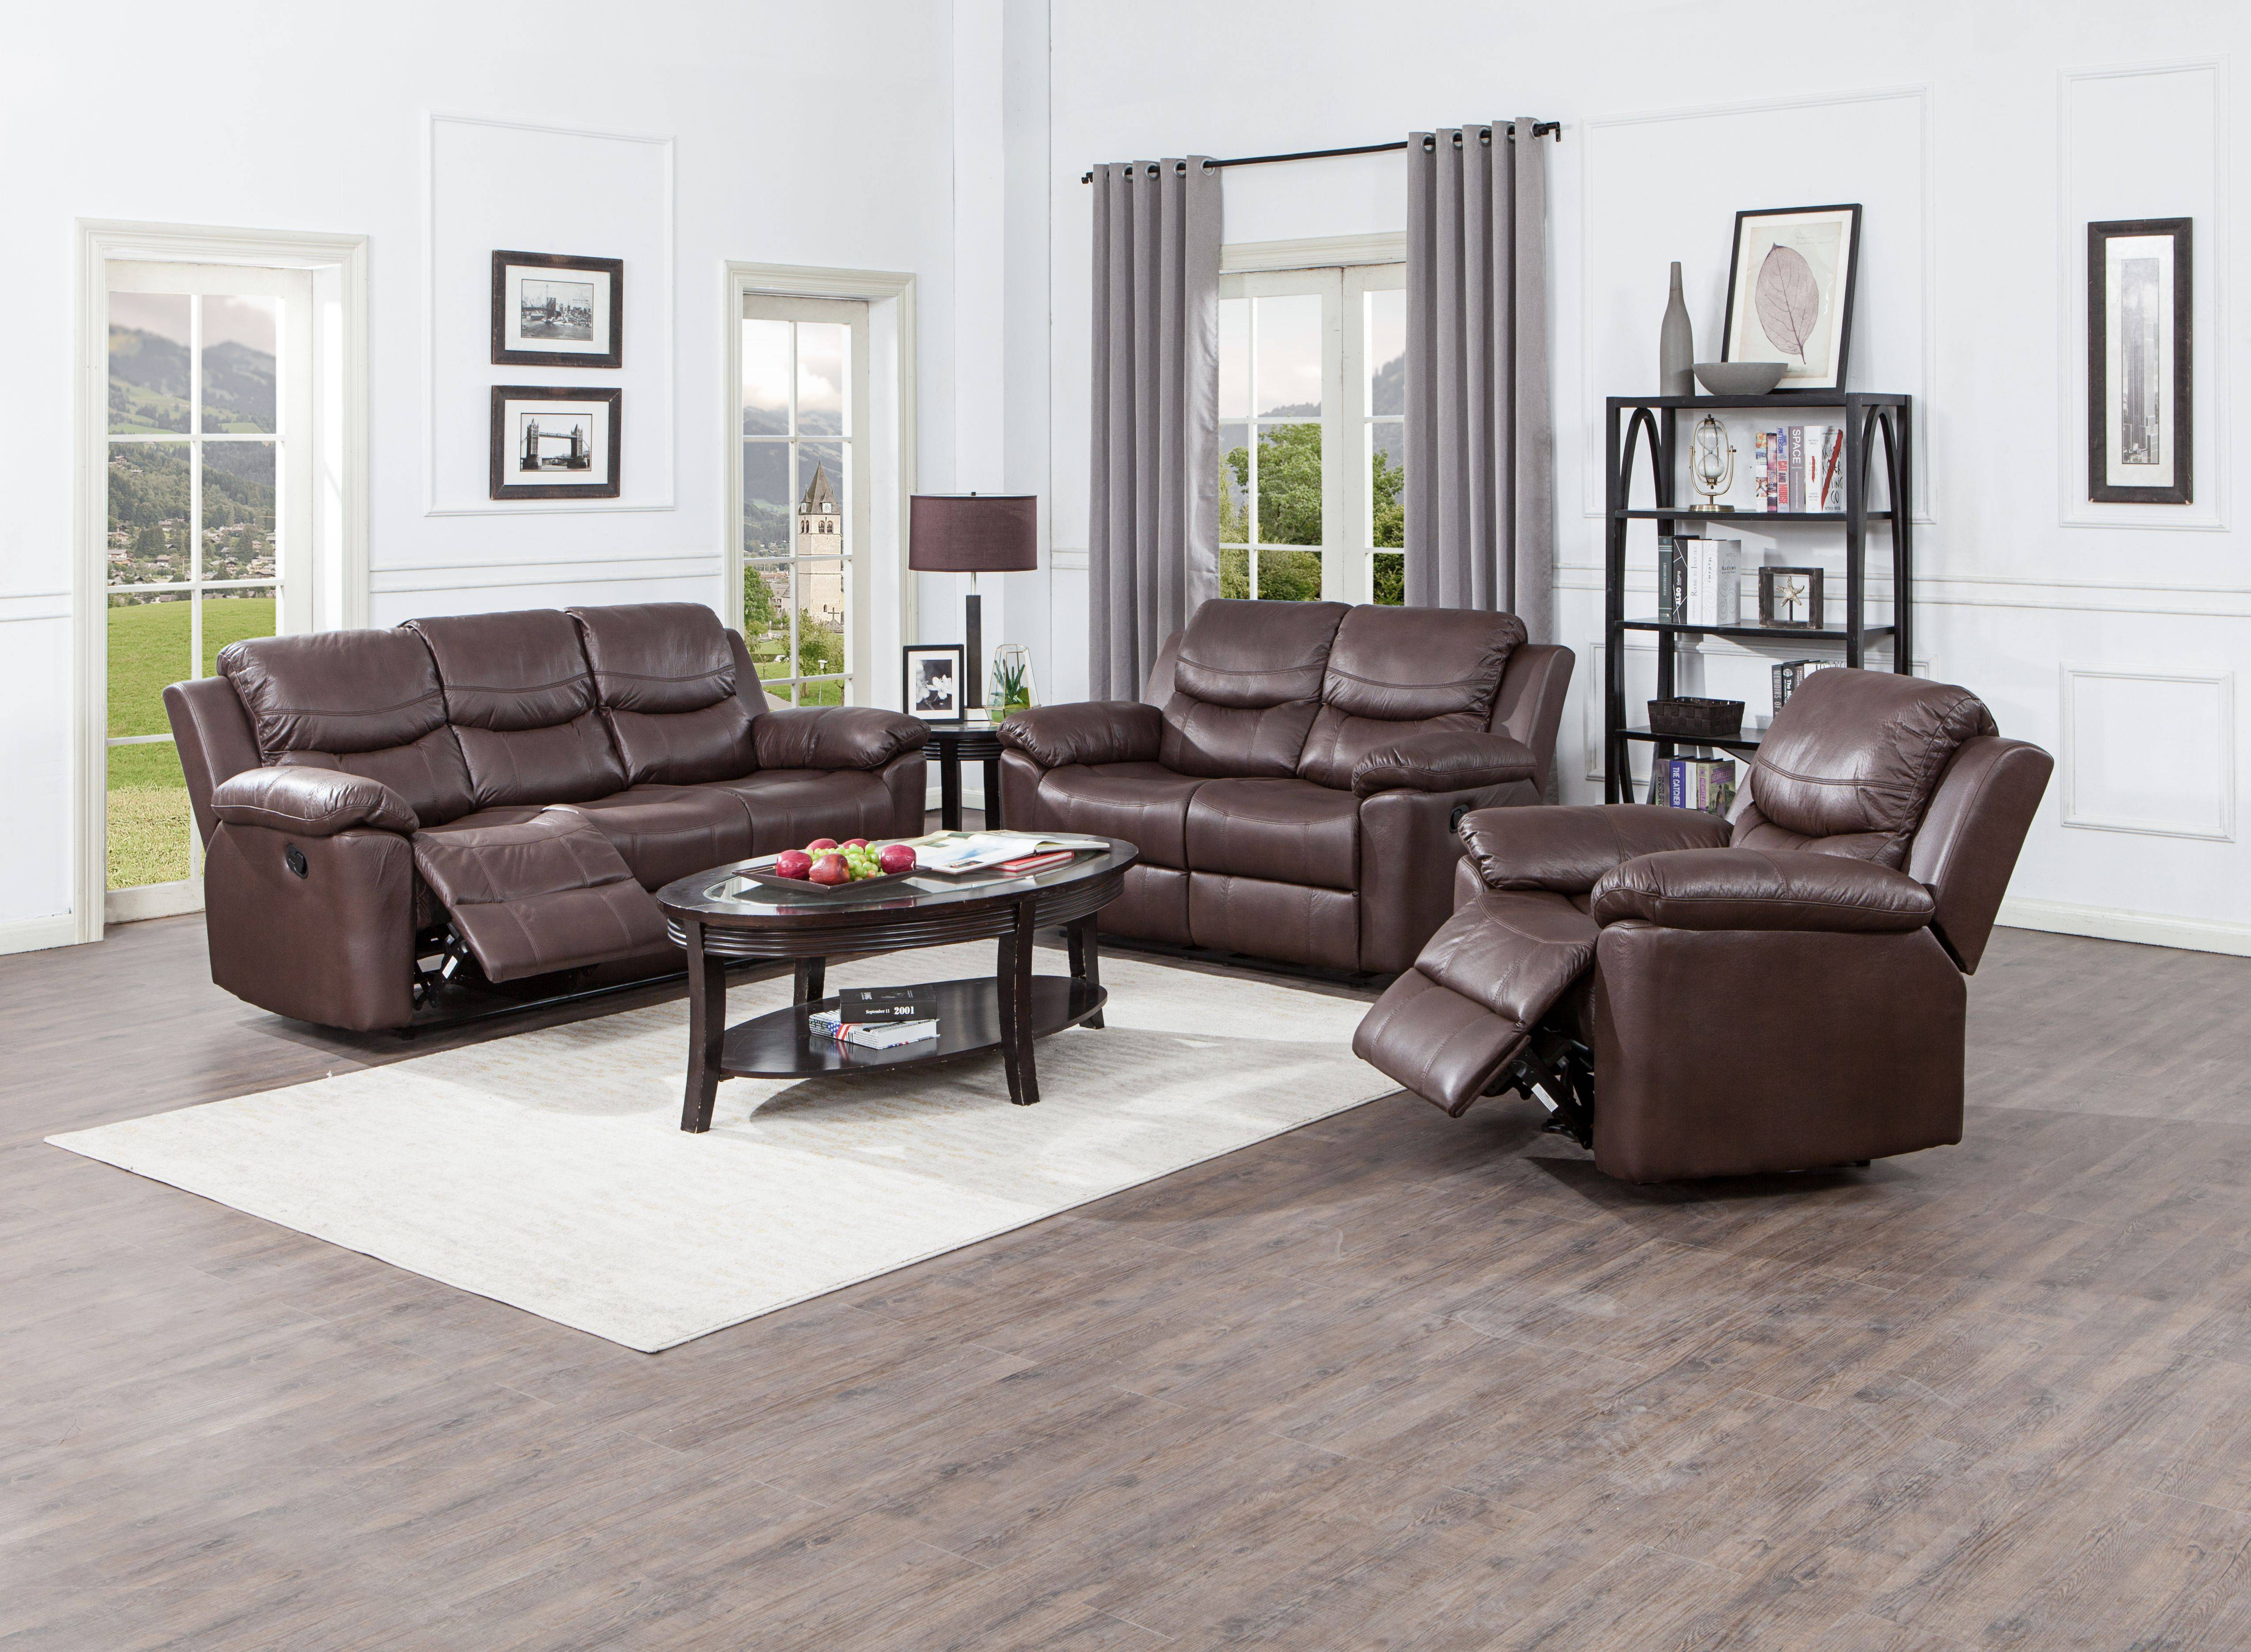 China OEM China Sectional Leather Rocker loveseat Ready to